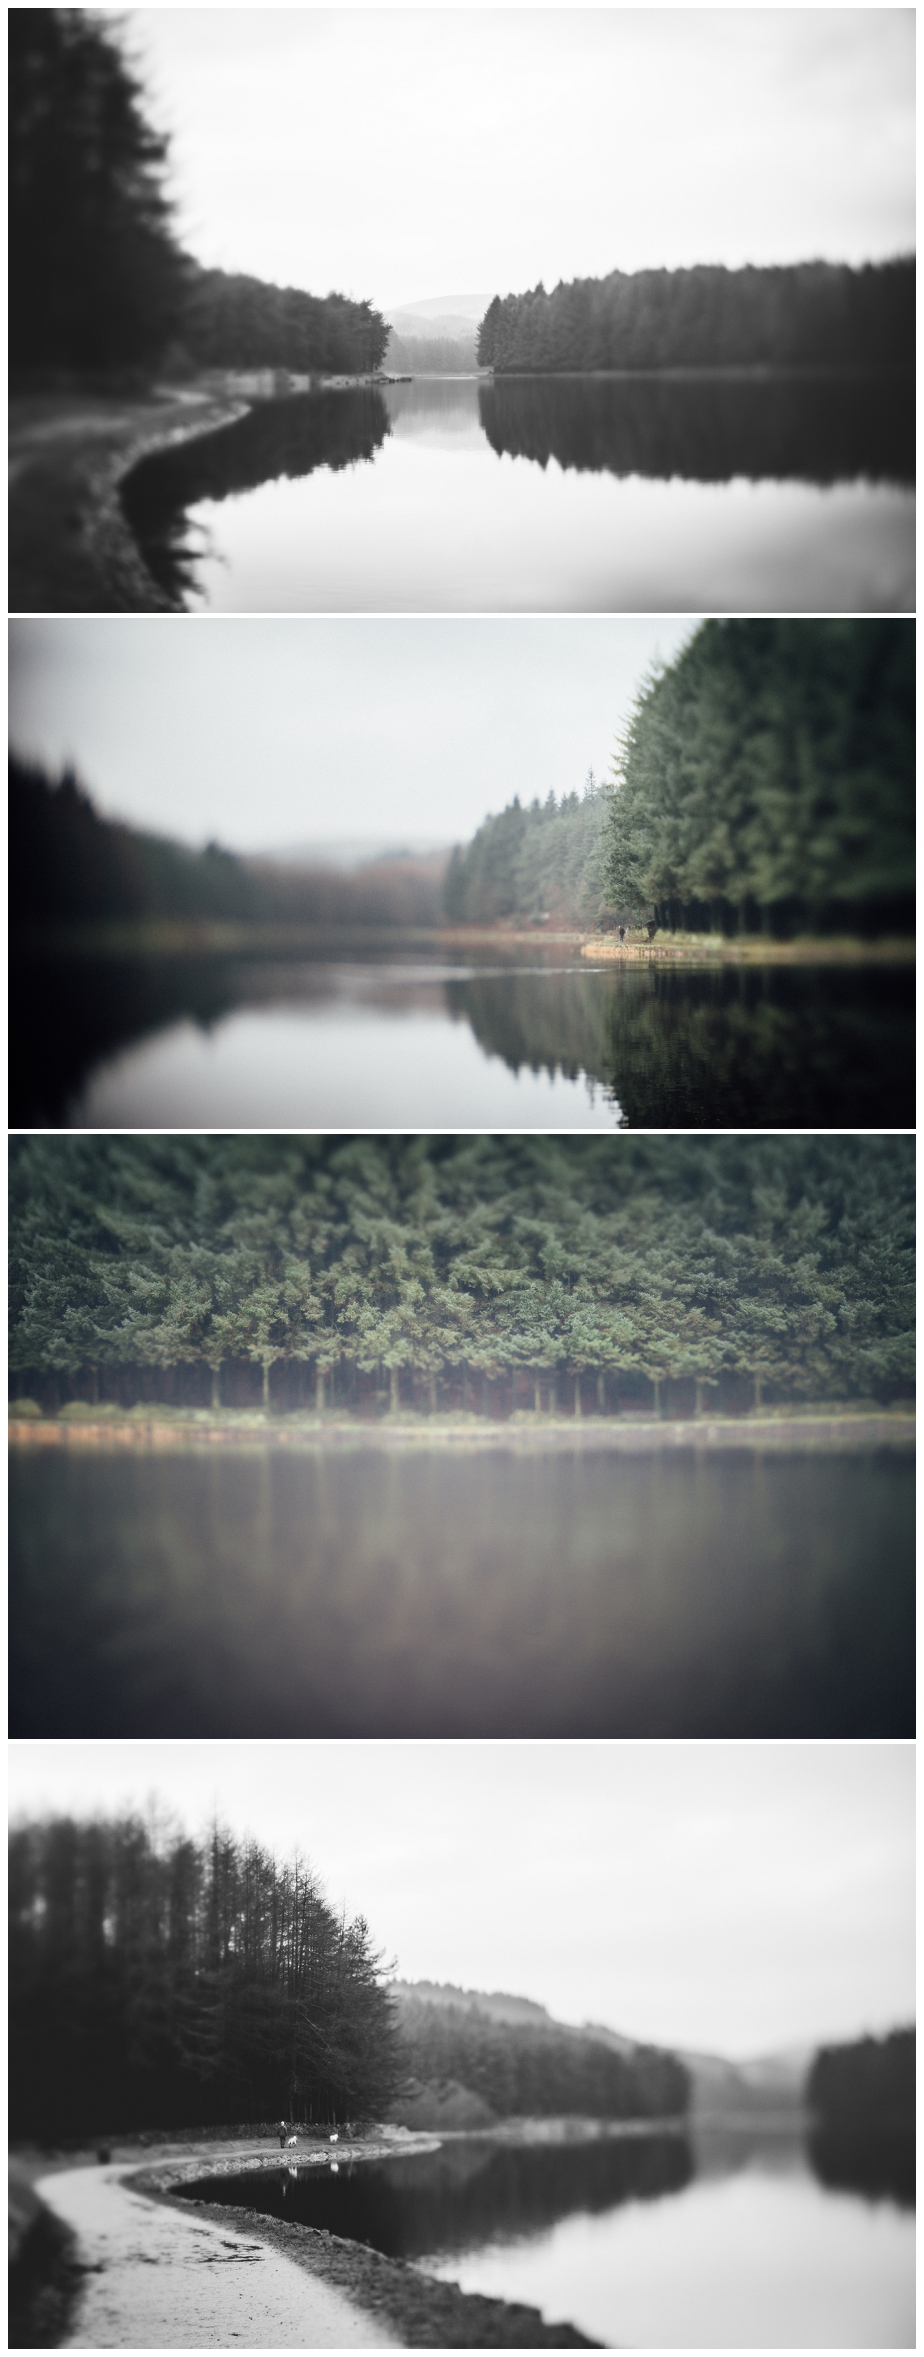 dreary winter landscapes with Lensbaby edge 50